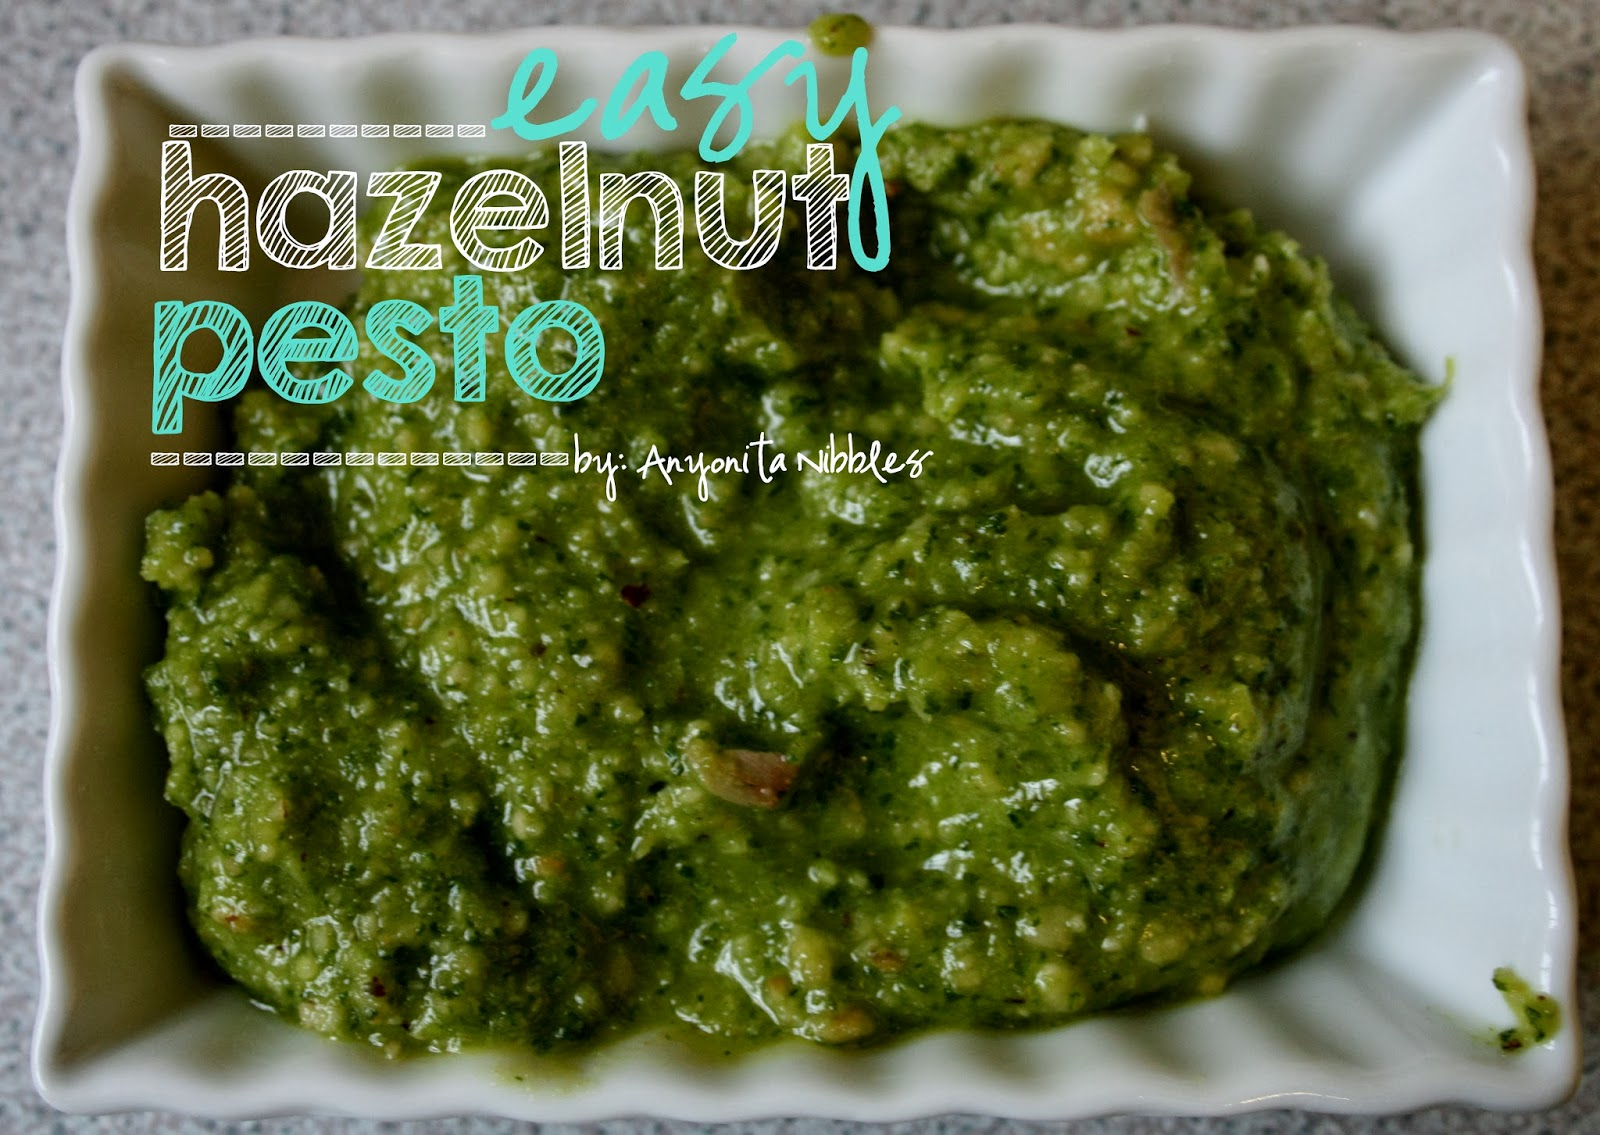 Easy Hazelnut Pesto perfect for tossing fresh pasta in or spreading on toast and topping with tomatoes